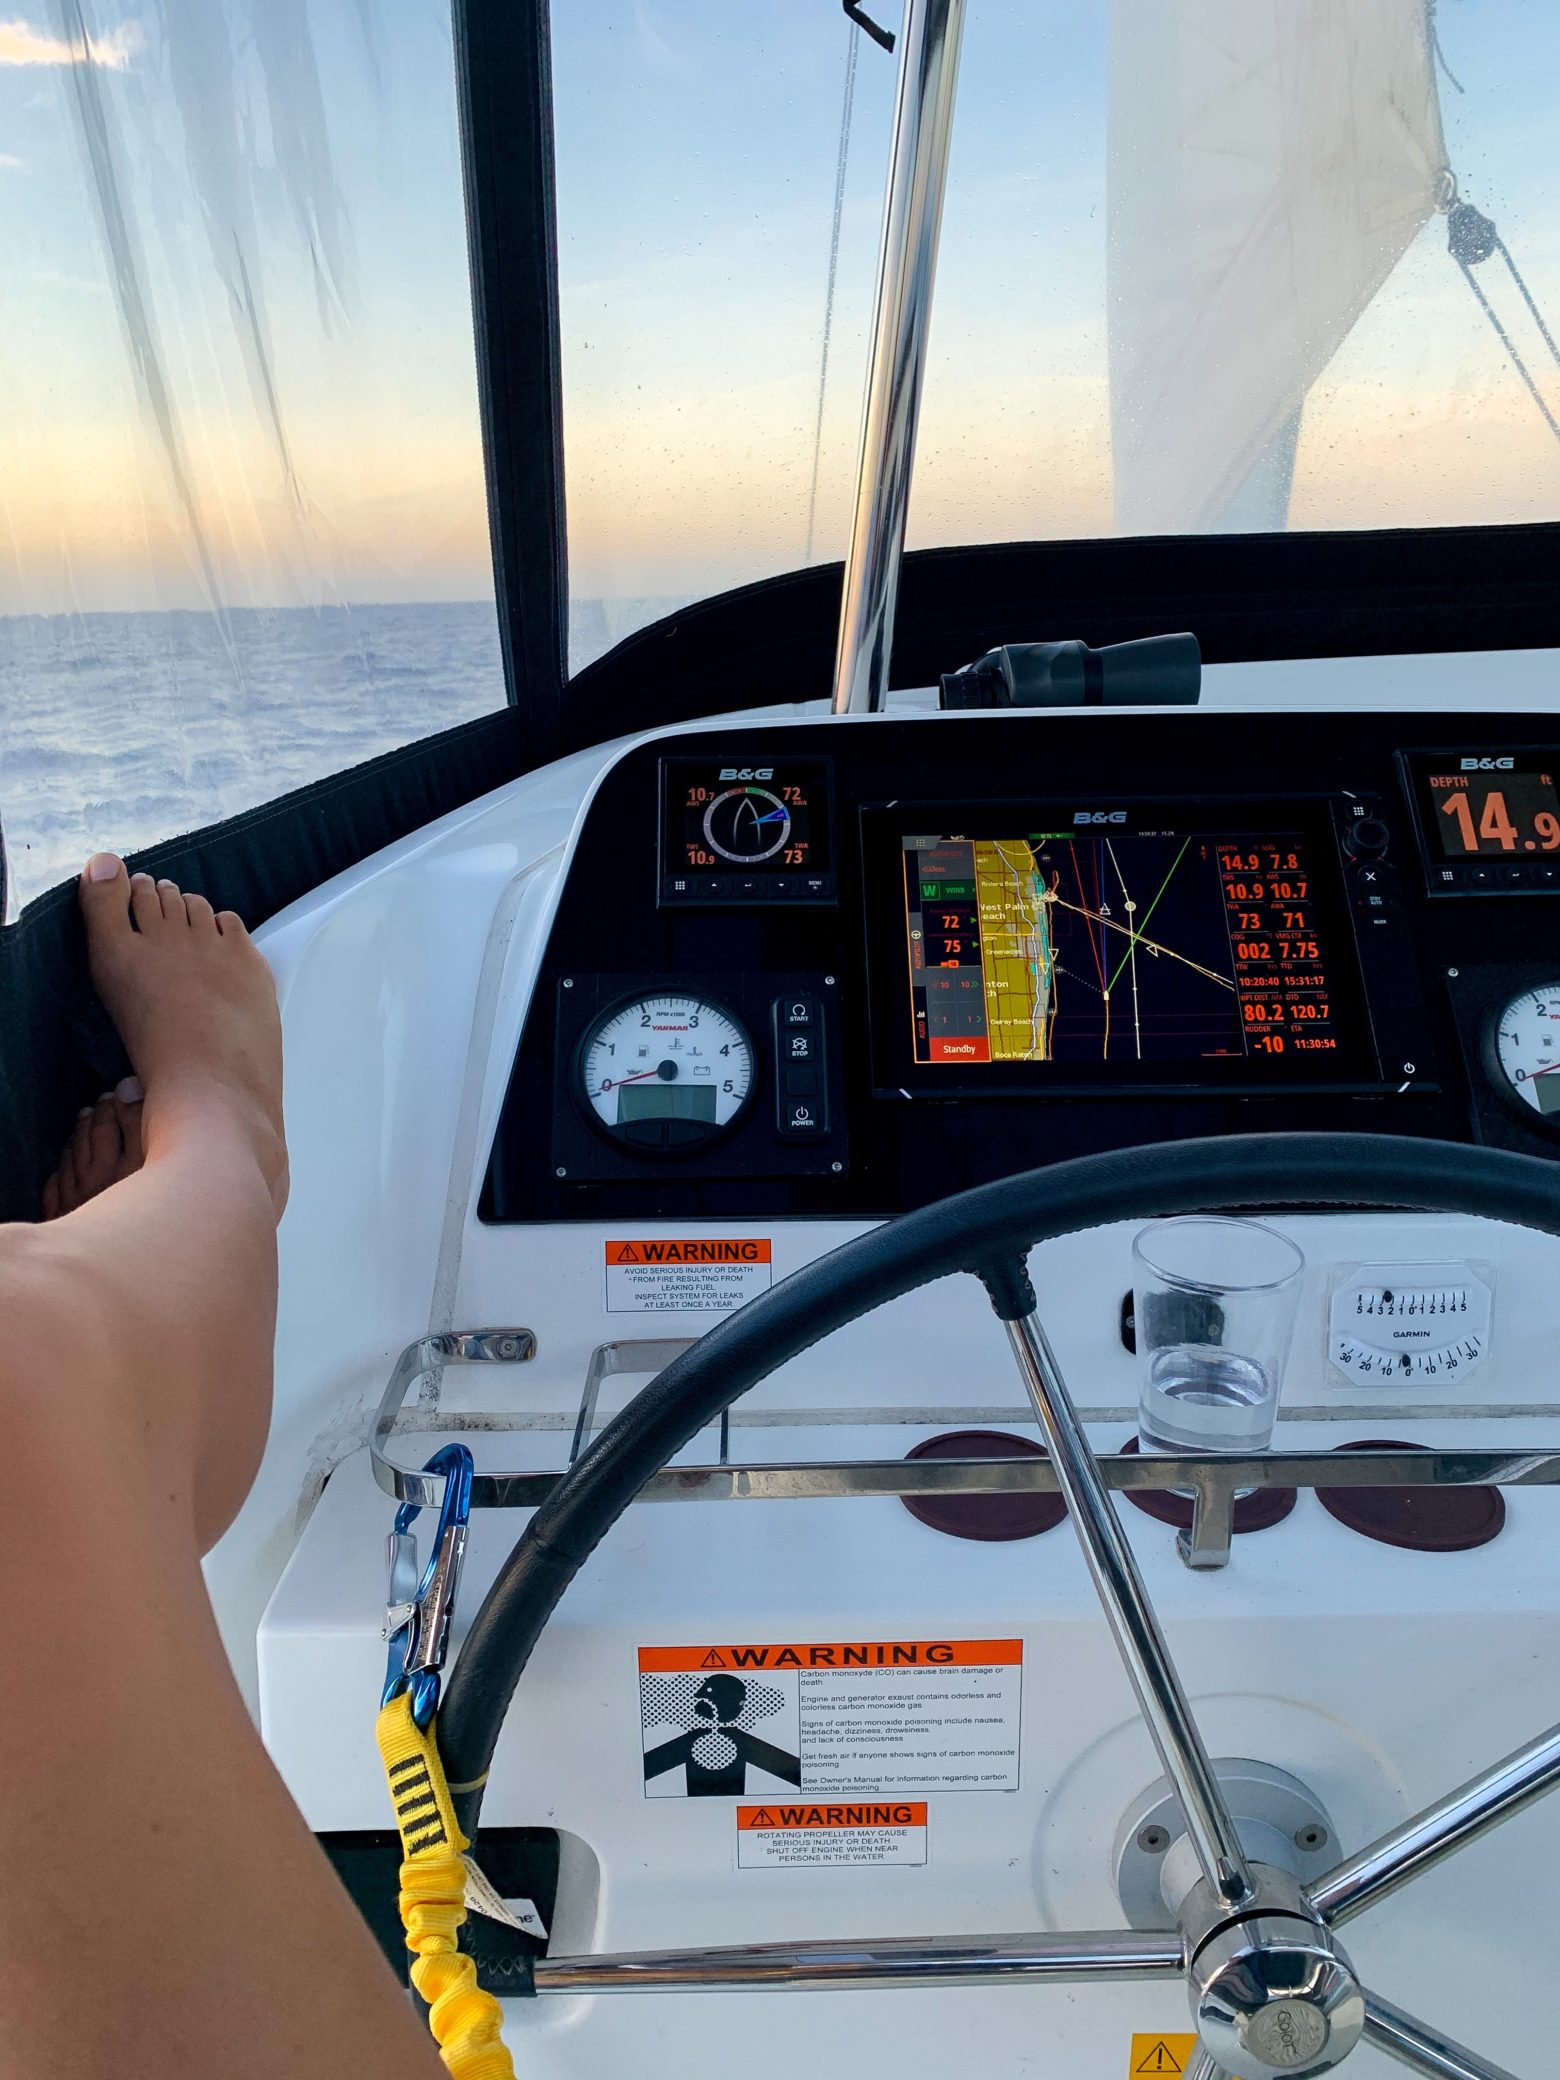 Our Overnight Sail to Cape Canaveral… Let the boat work begin!